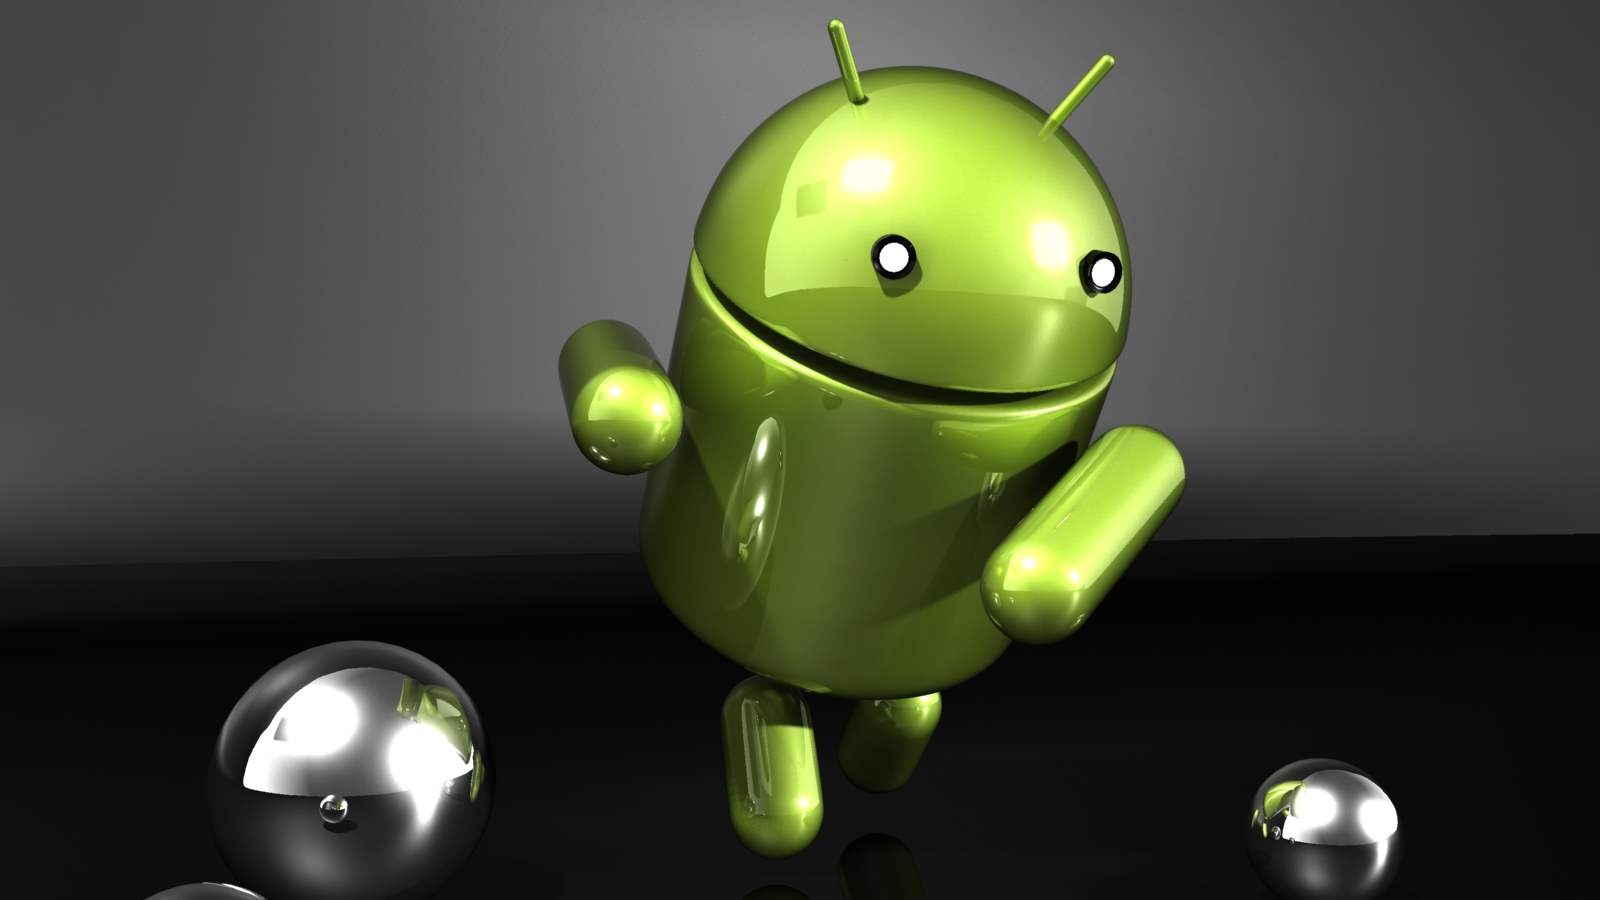 hot hd android wallpapers - i